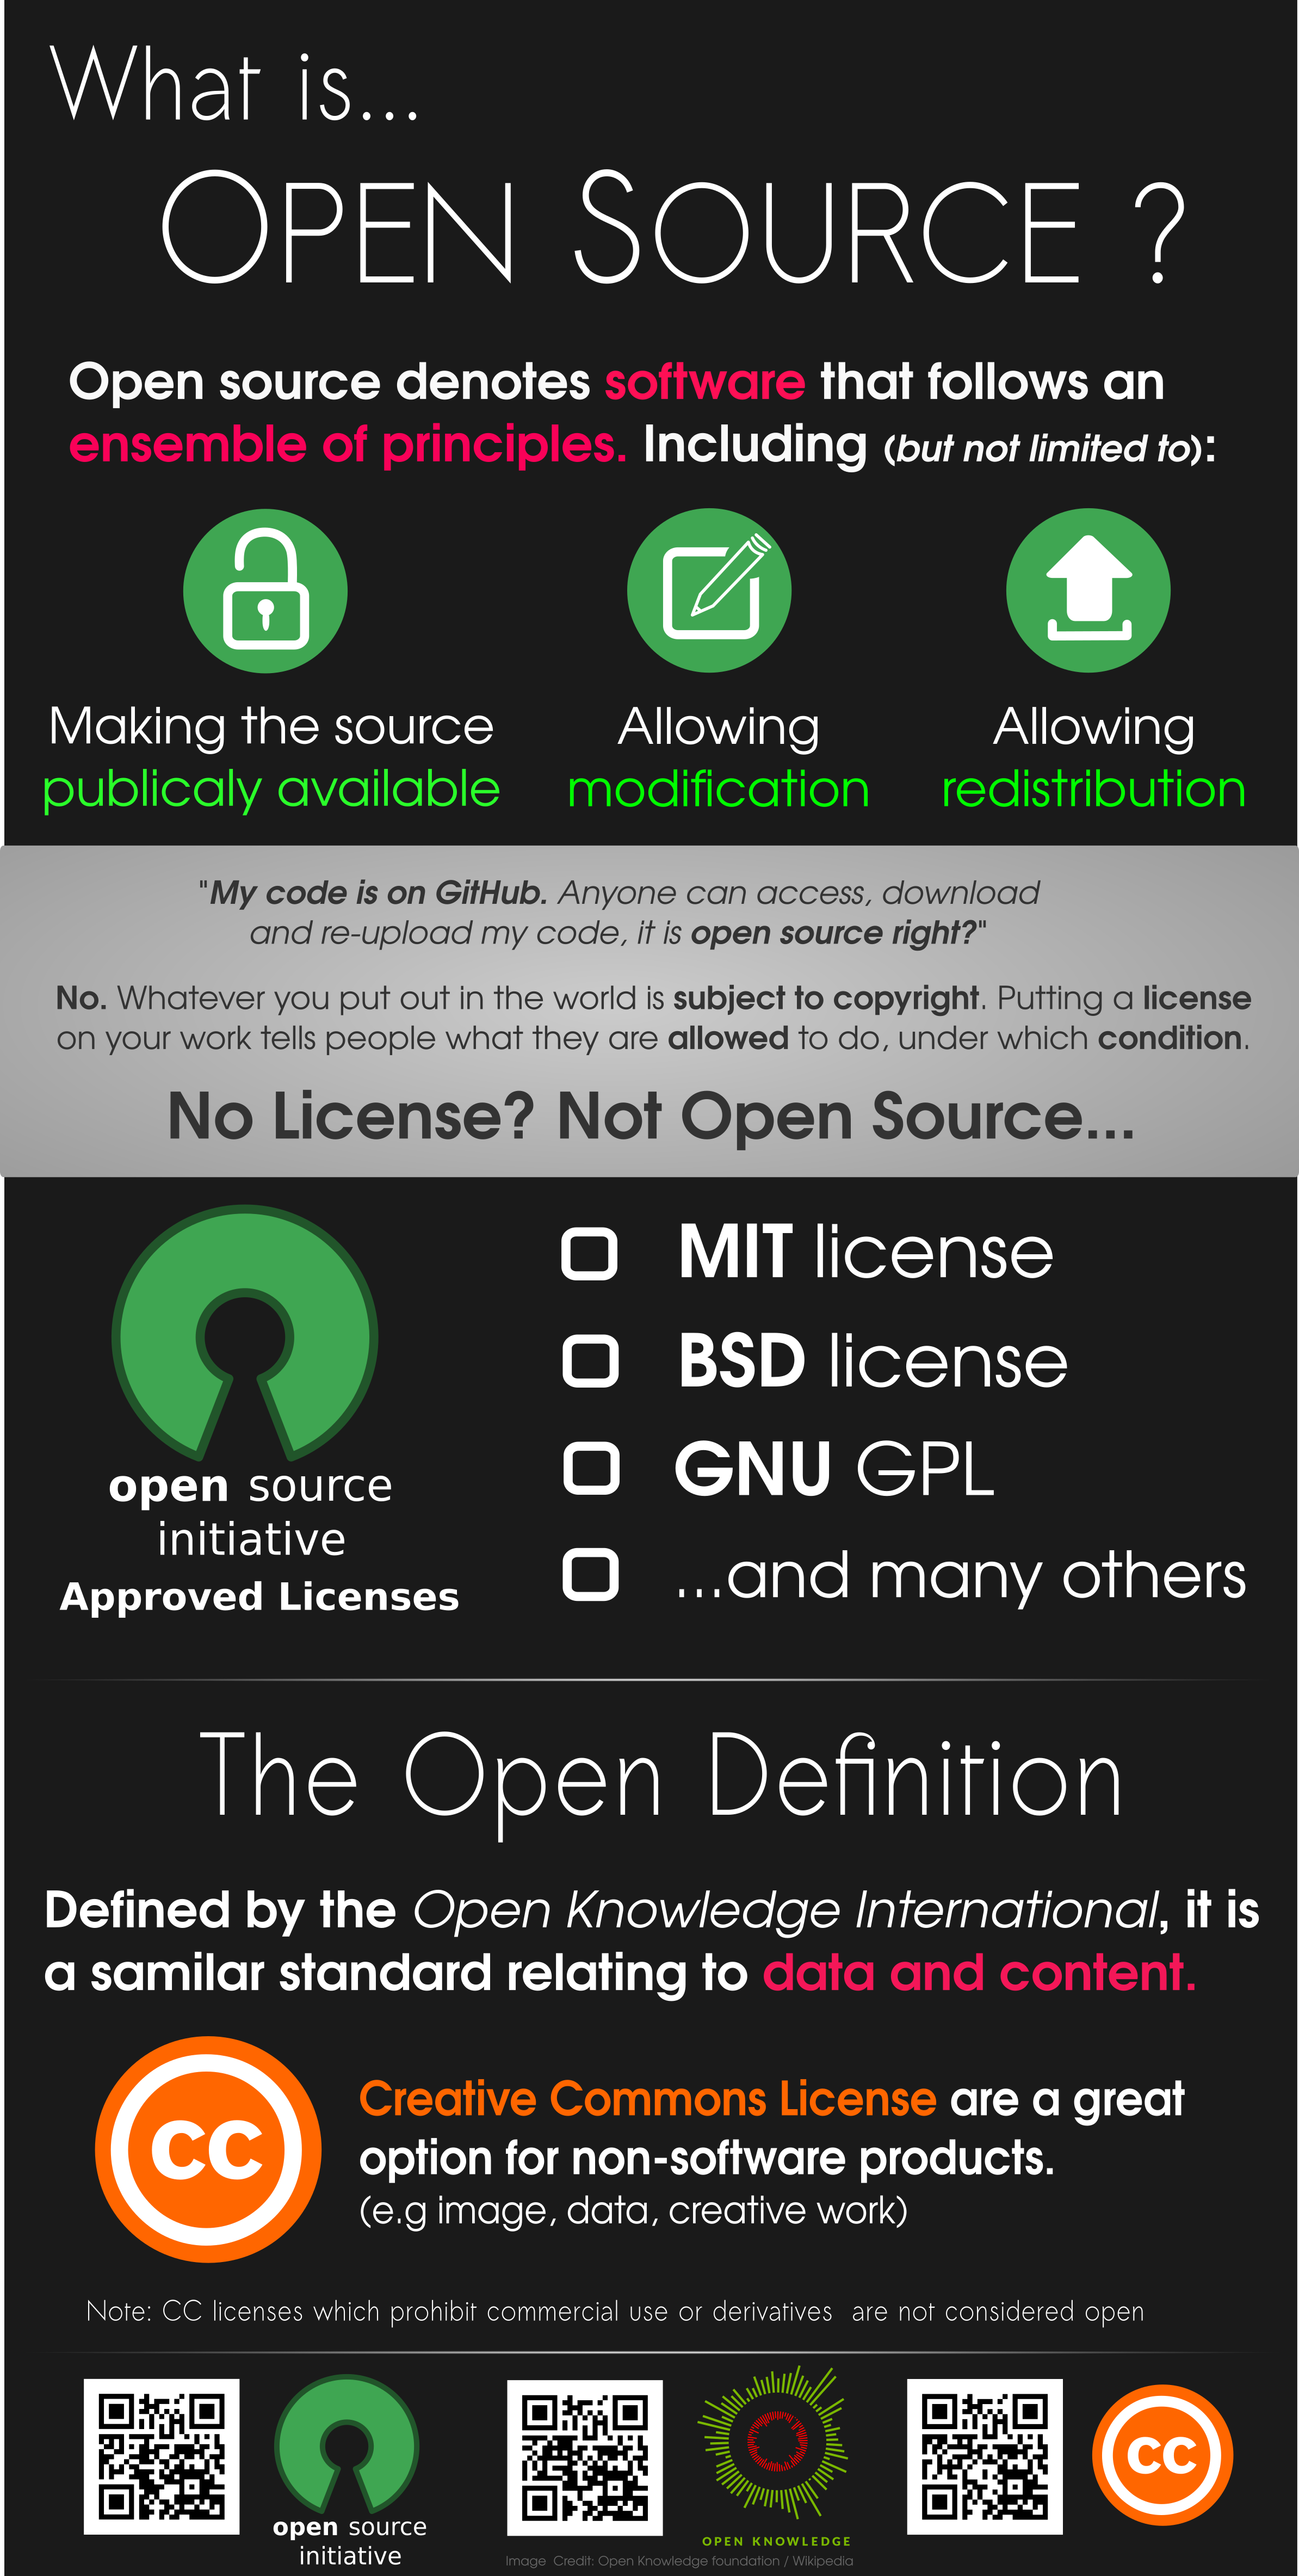 whatisopensource.png